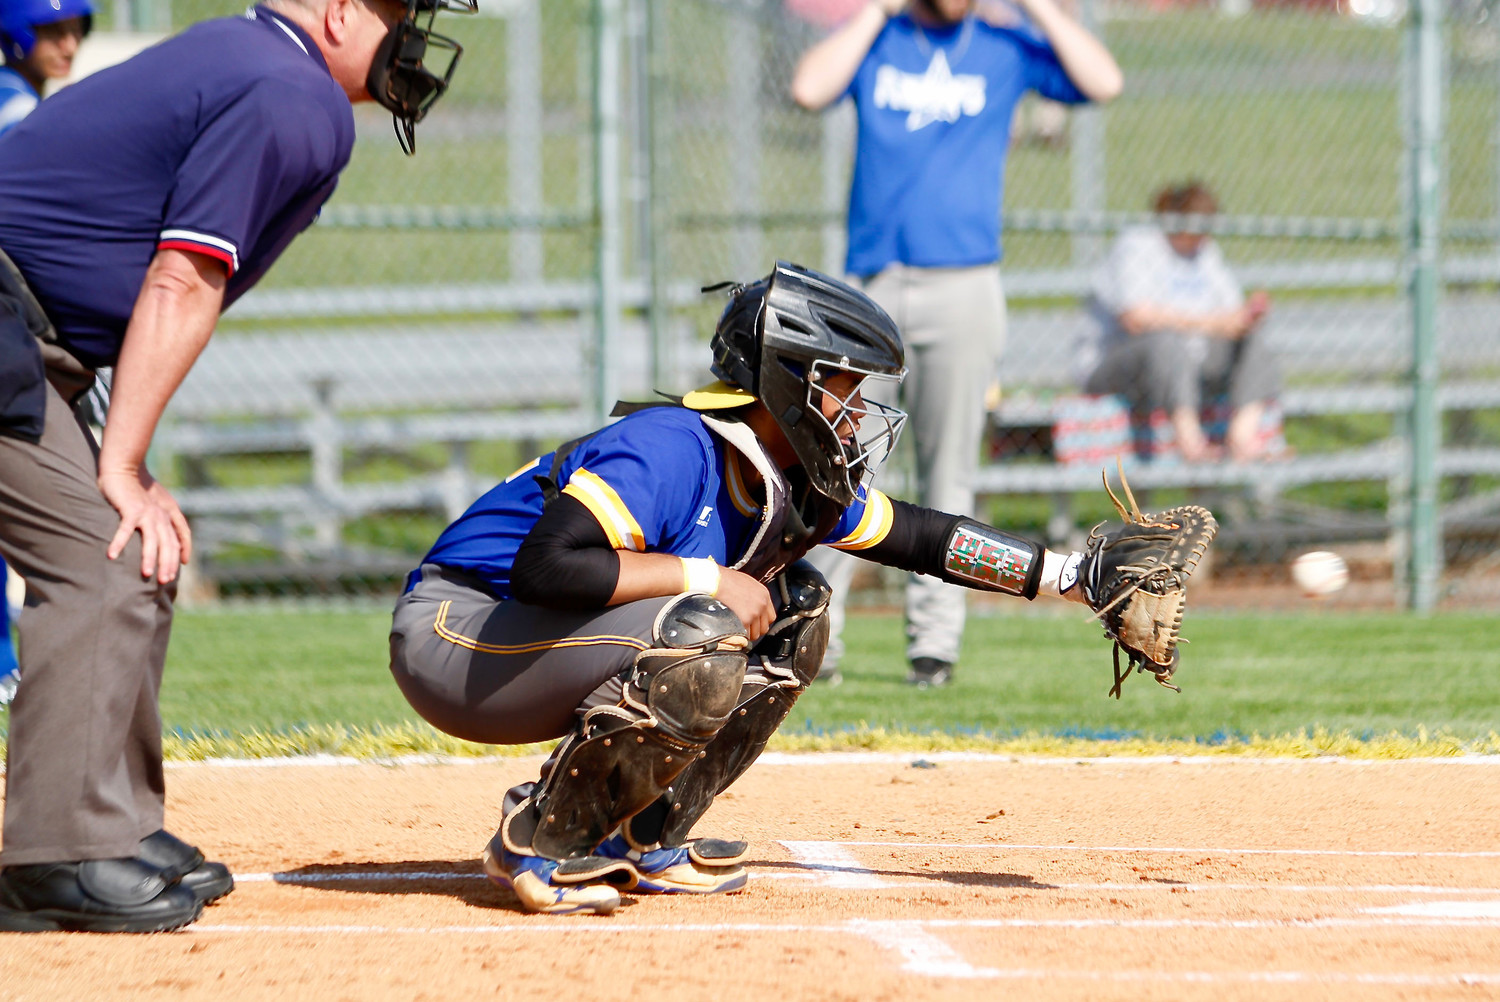 Avery Williams catches a warmup pitch from Dominick Barilla during Middletown's win over Steelton-Highspire on May 8.